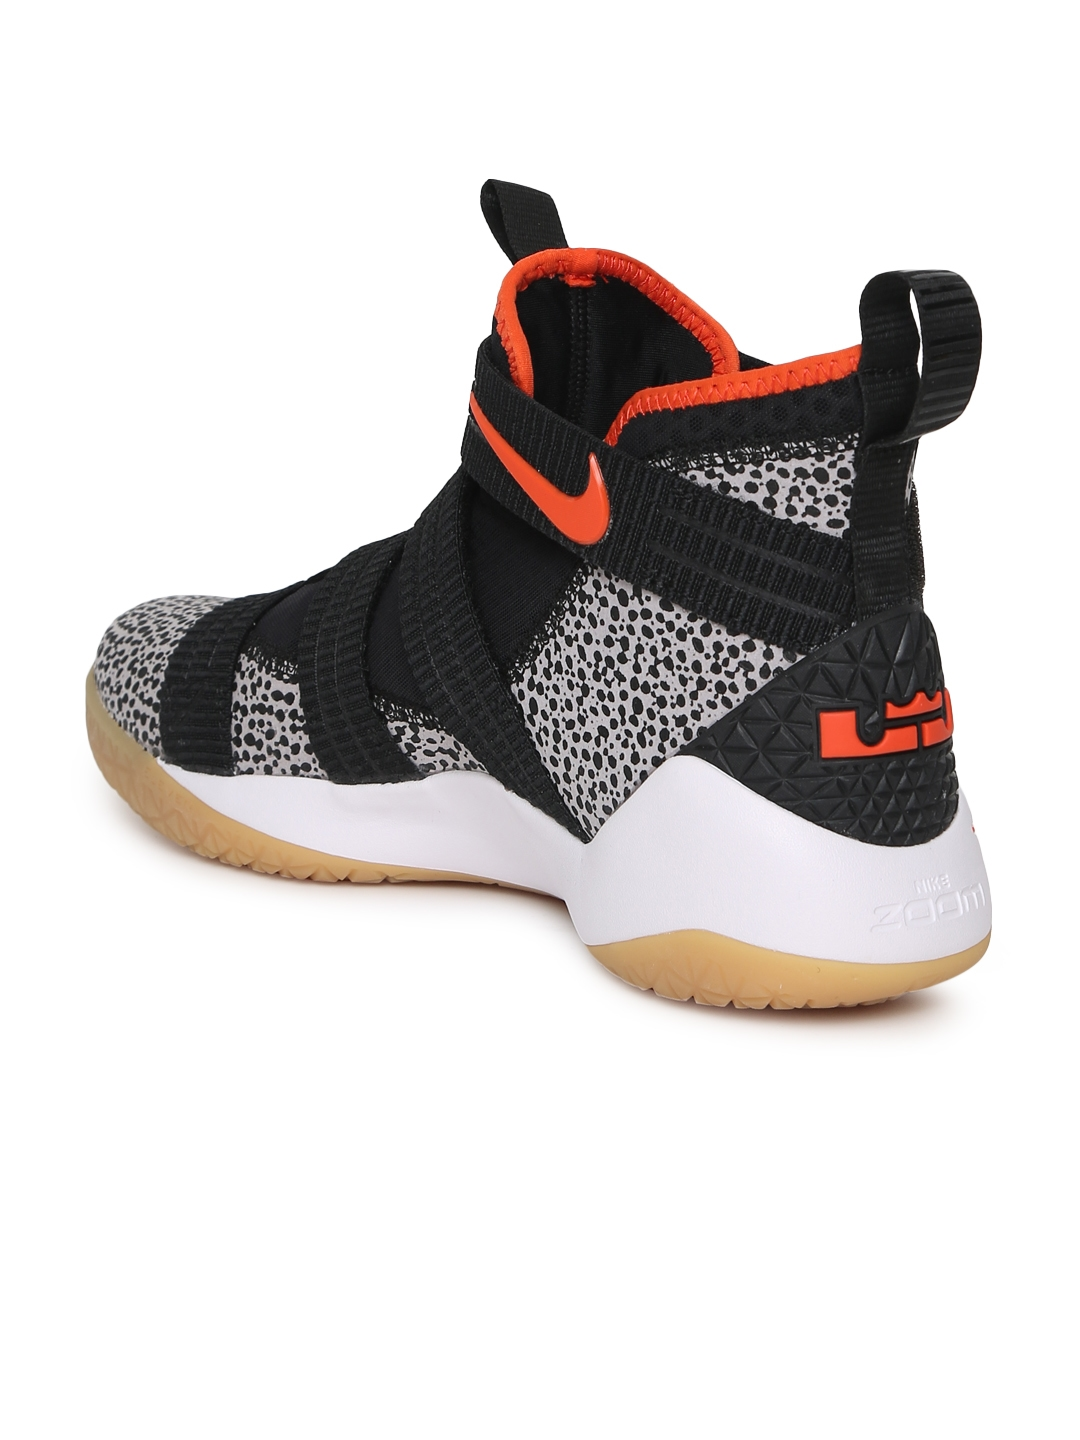 778798f048e Buy Nike Men Black Leather Mid Top LEBRON SOLDIER XI SFG Basketball ...